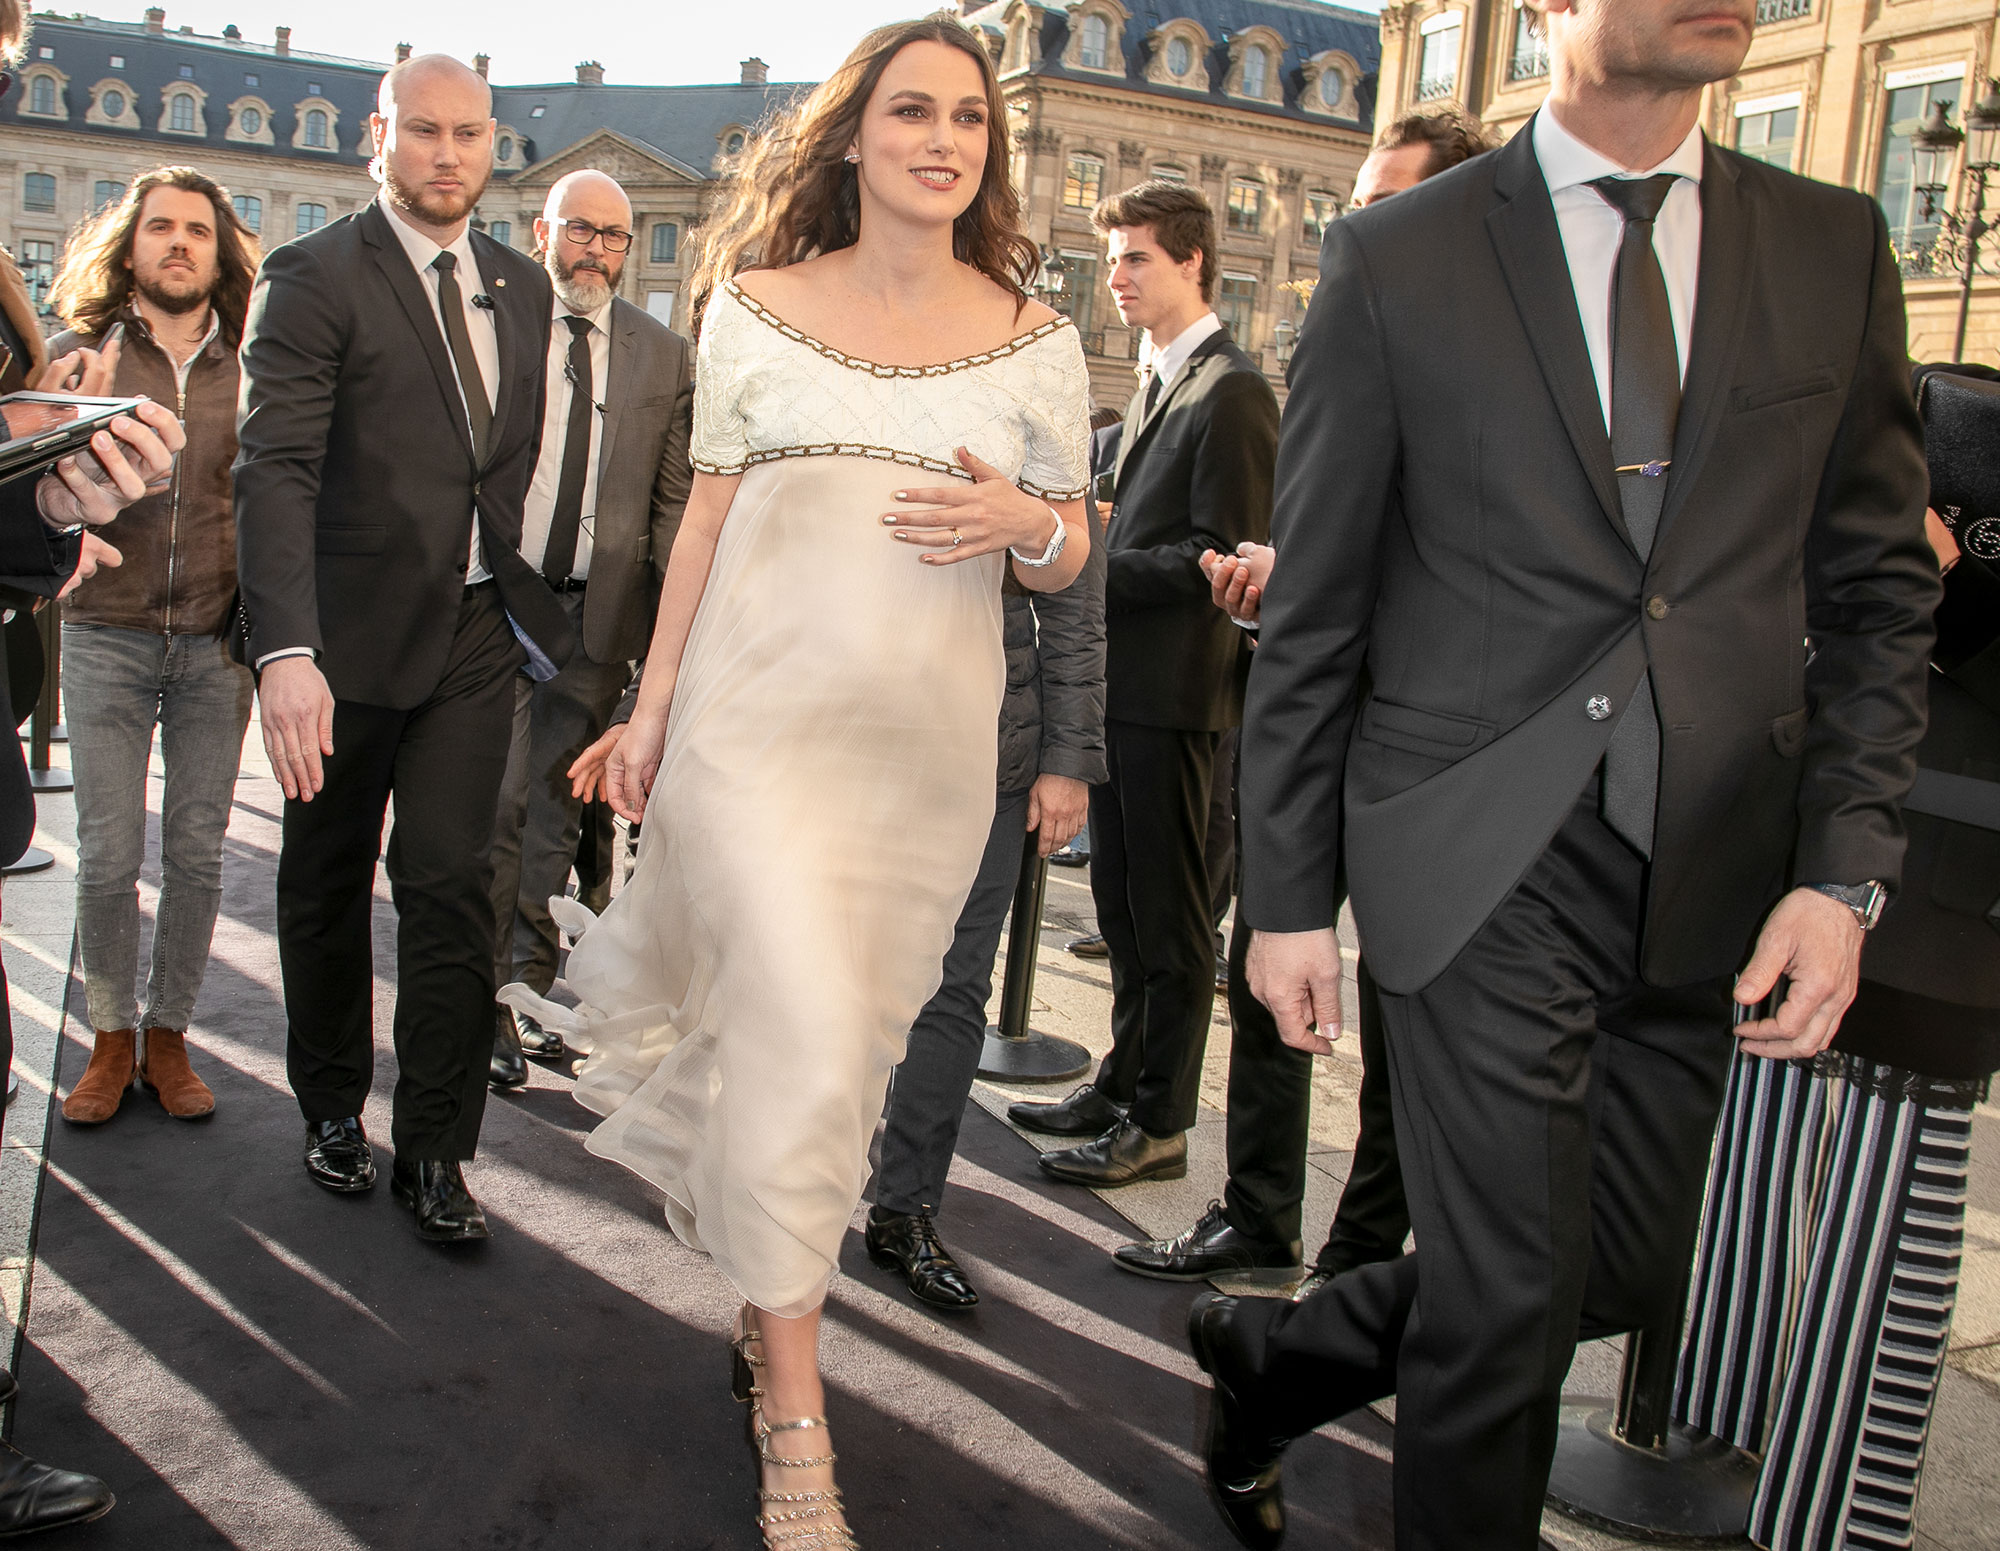 Keira Knightley Is Pregnant and Expecting Second Child with Husband James Righton